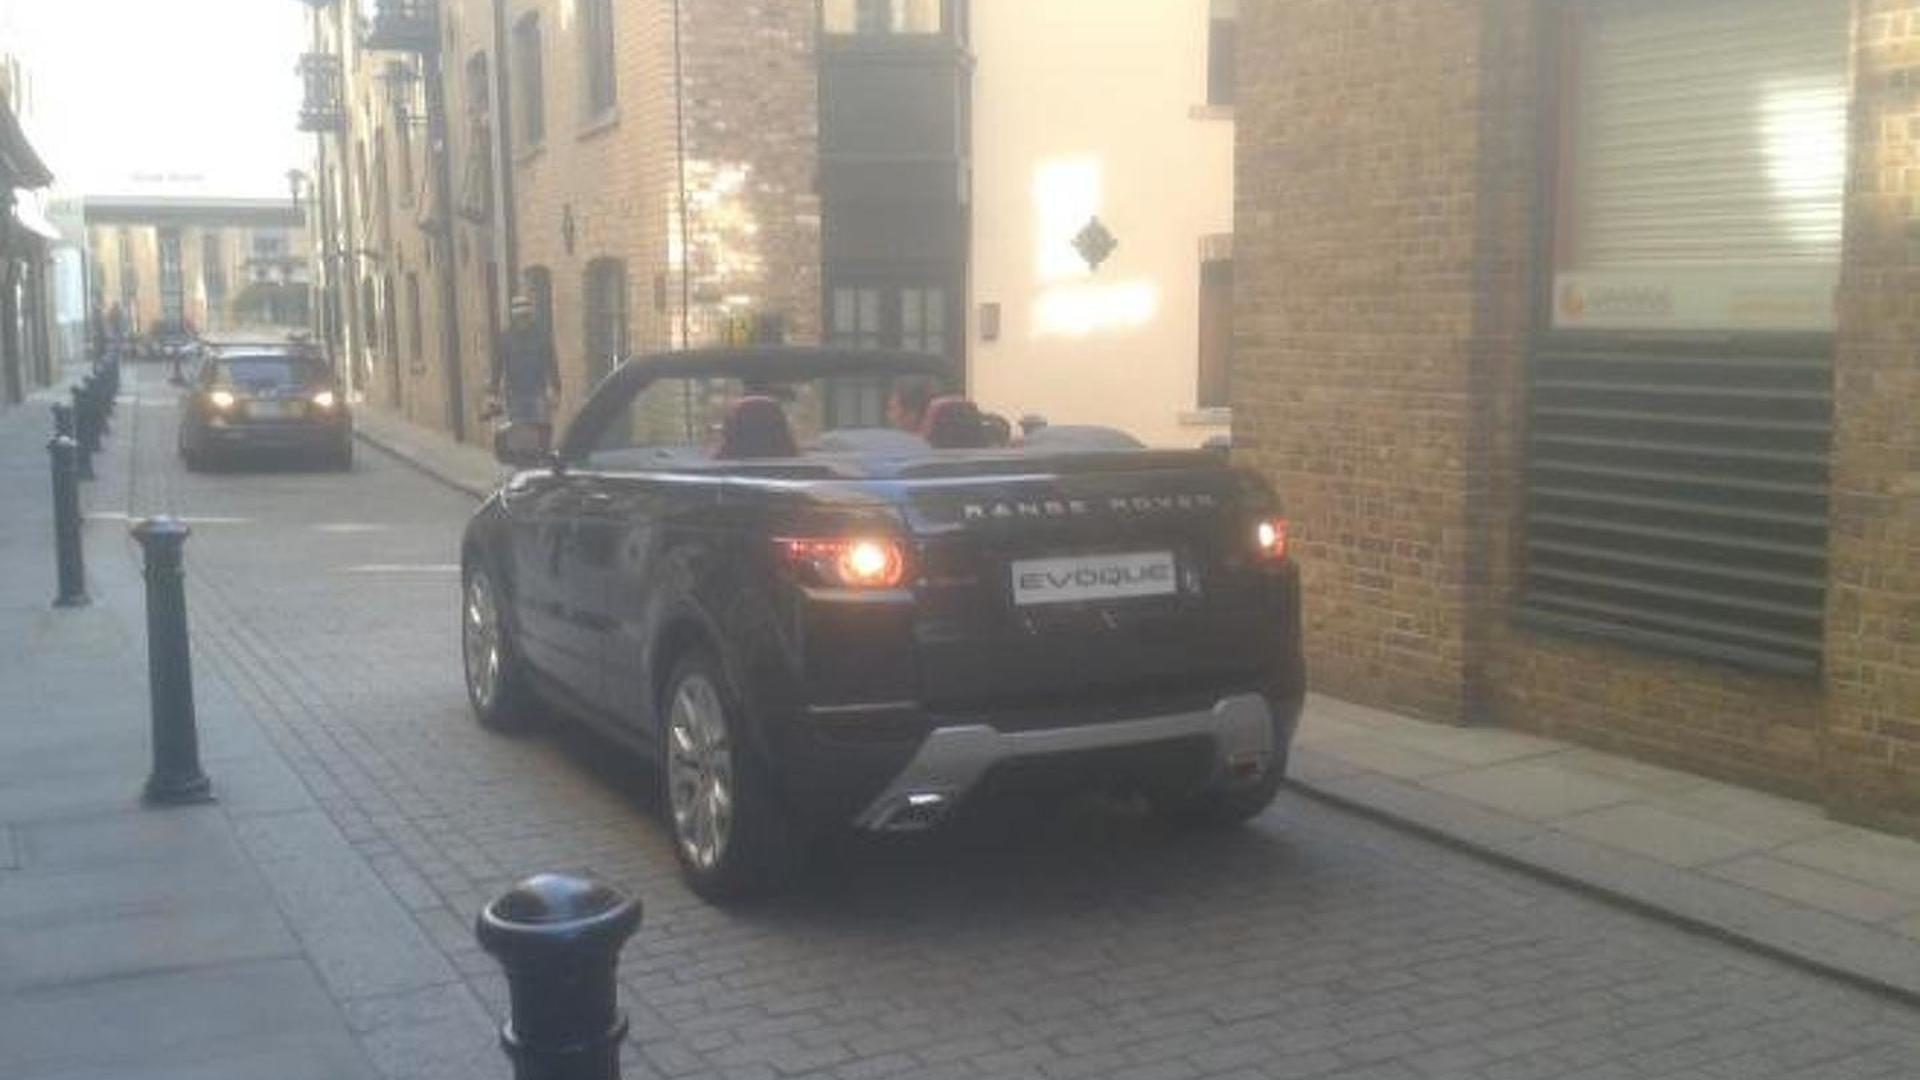 https://icdn-8.motor1.com/images/mgl/120oK/s1/2012-298464-land-rover-evoque-cabriolet-concept-spotted-in-london1.jpg